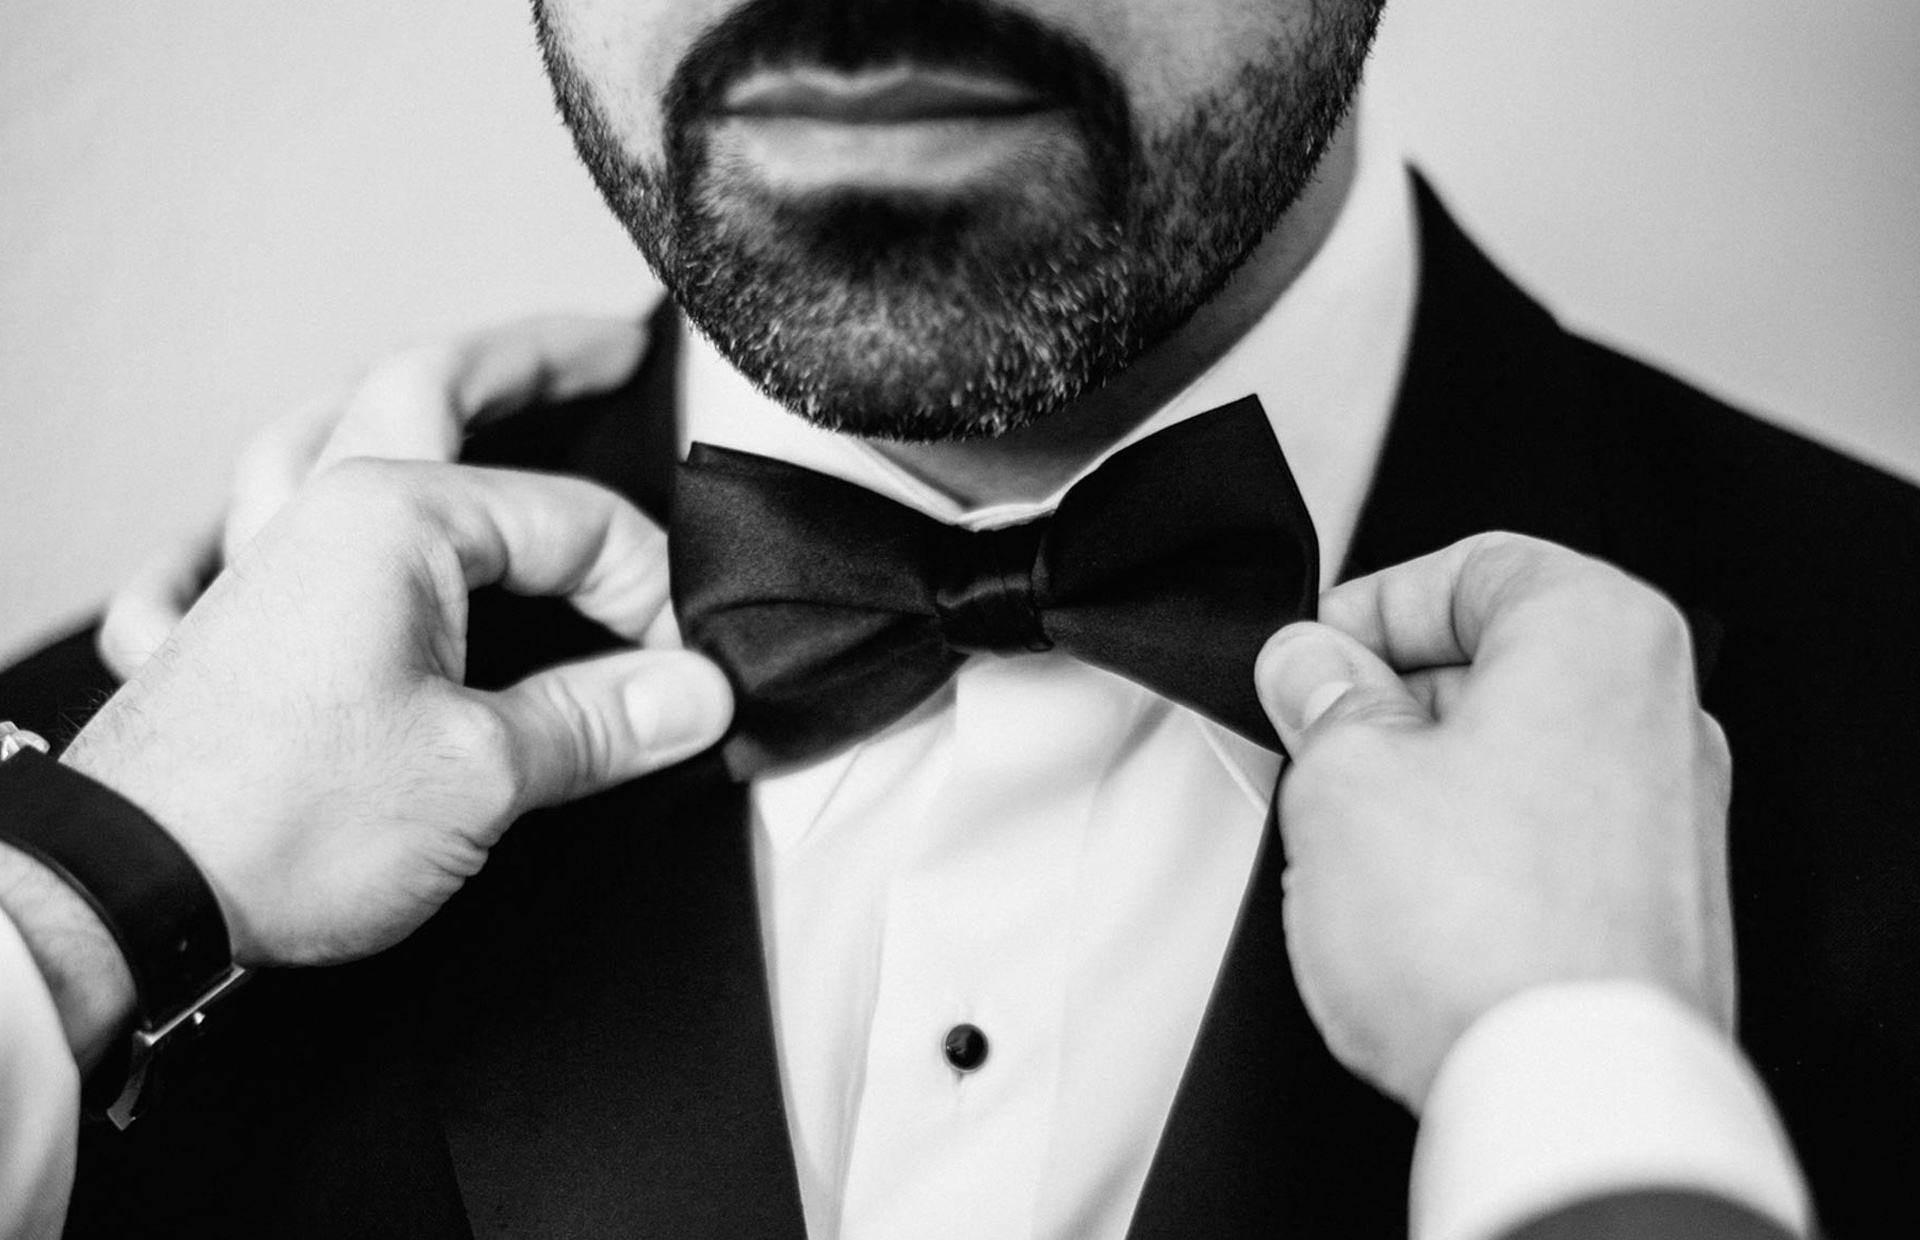 How to Style Black Tie Attire for Men on Special Occasions